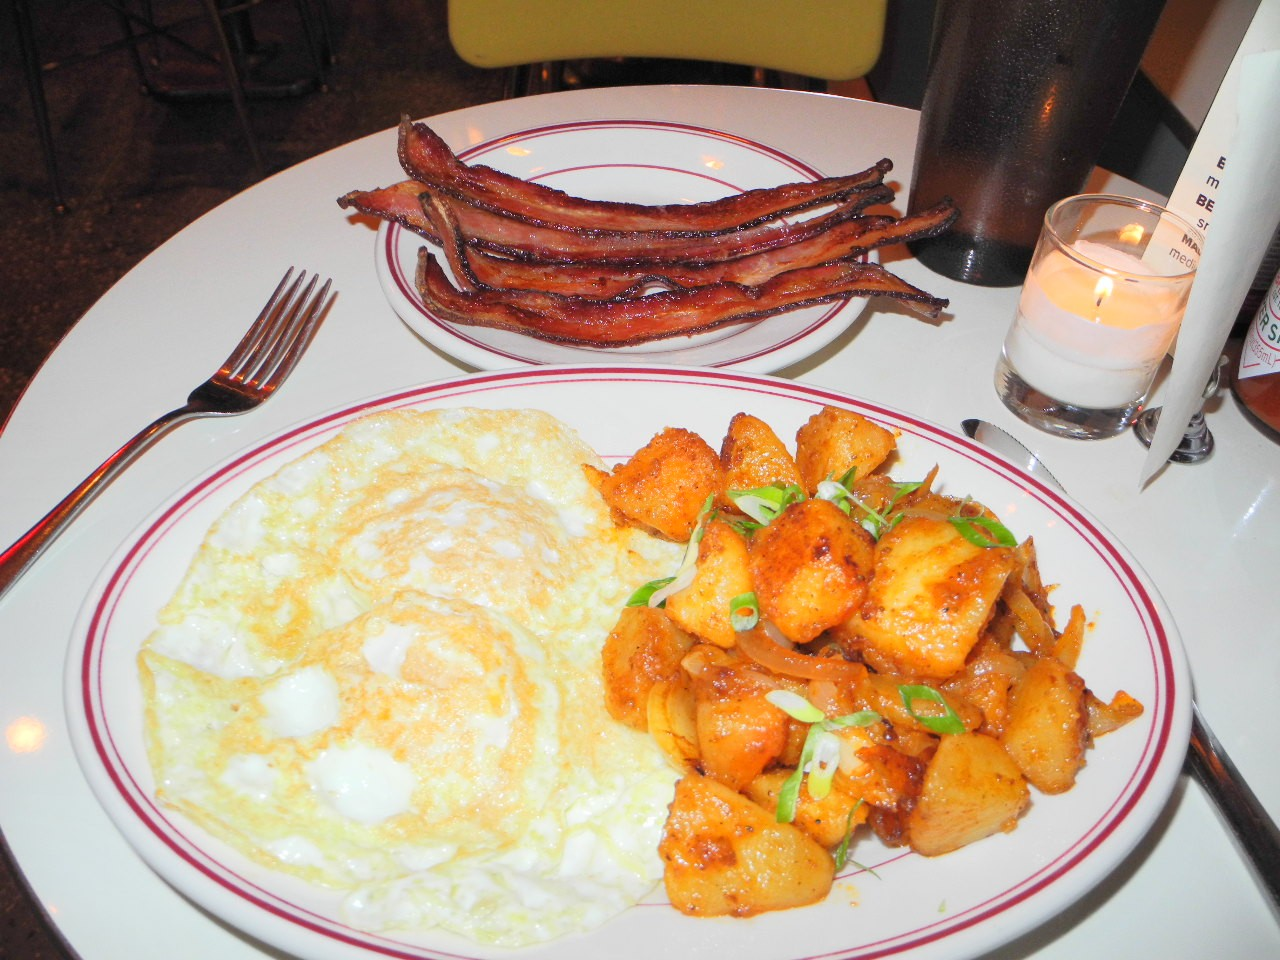 Bowery Diner - Eggs, Bacon & Home Fries